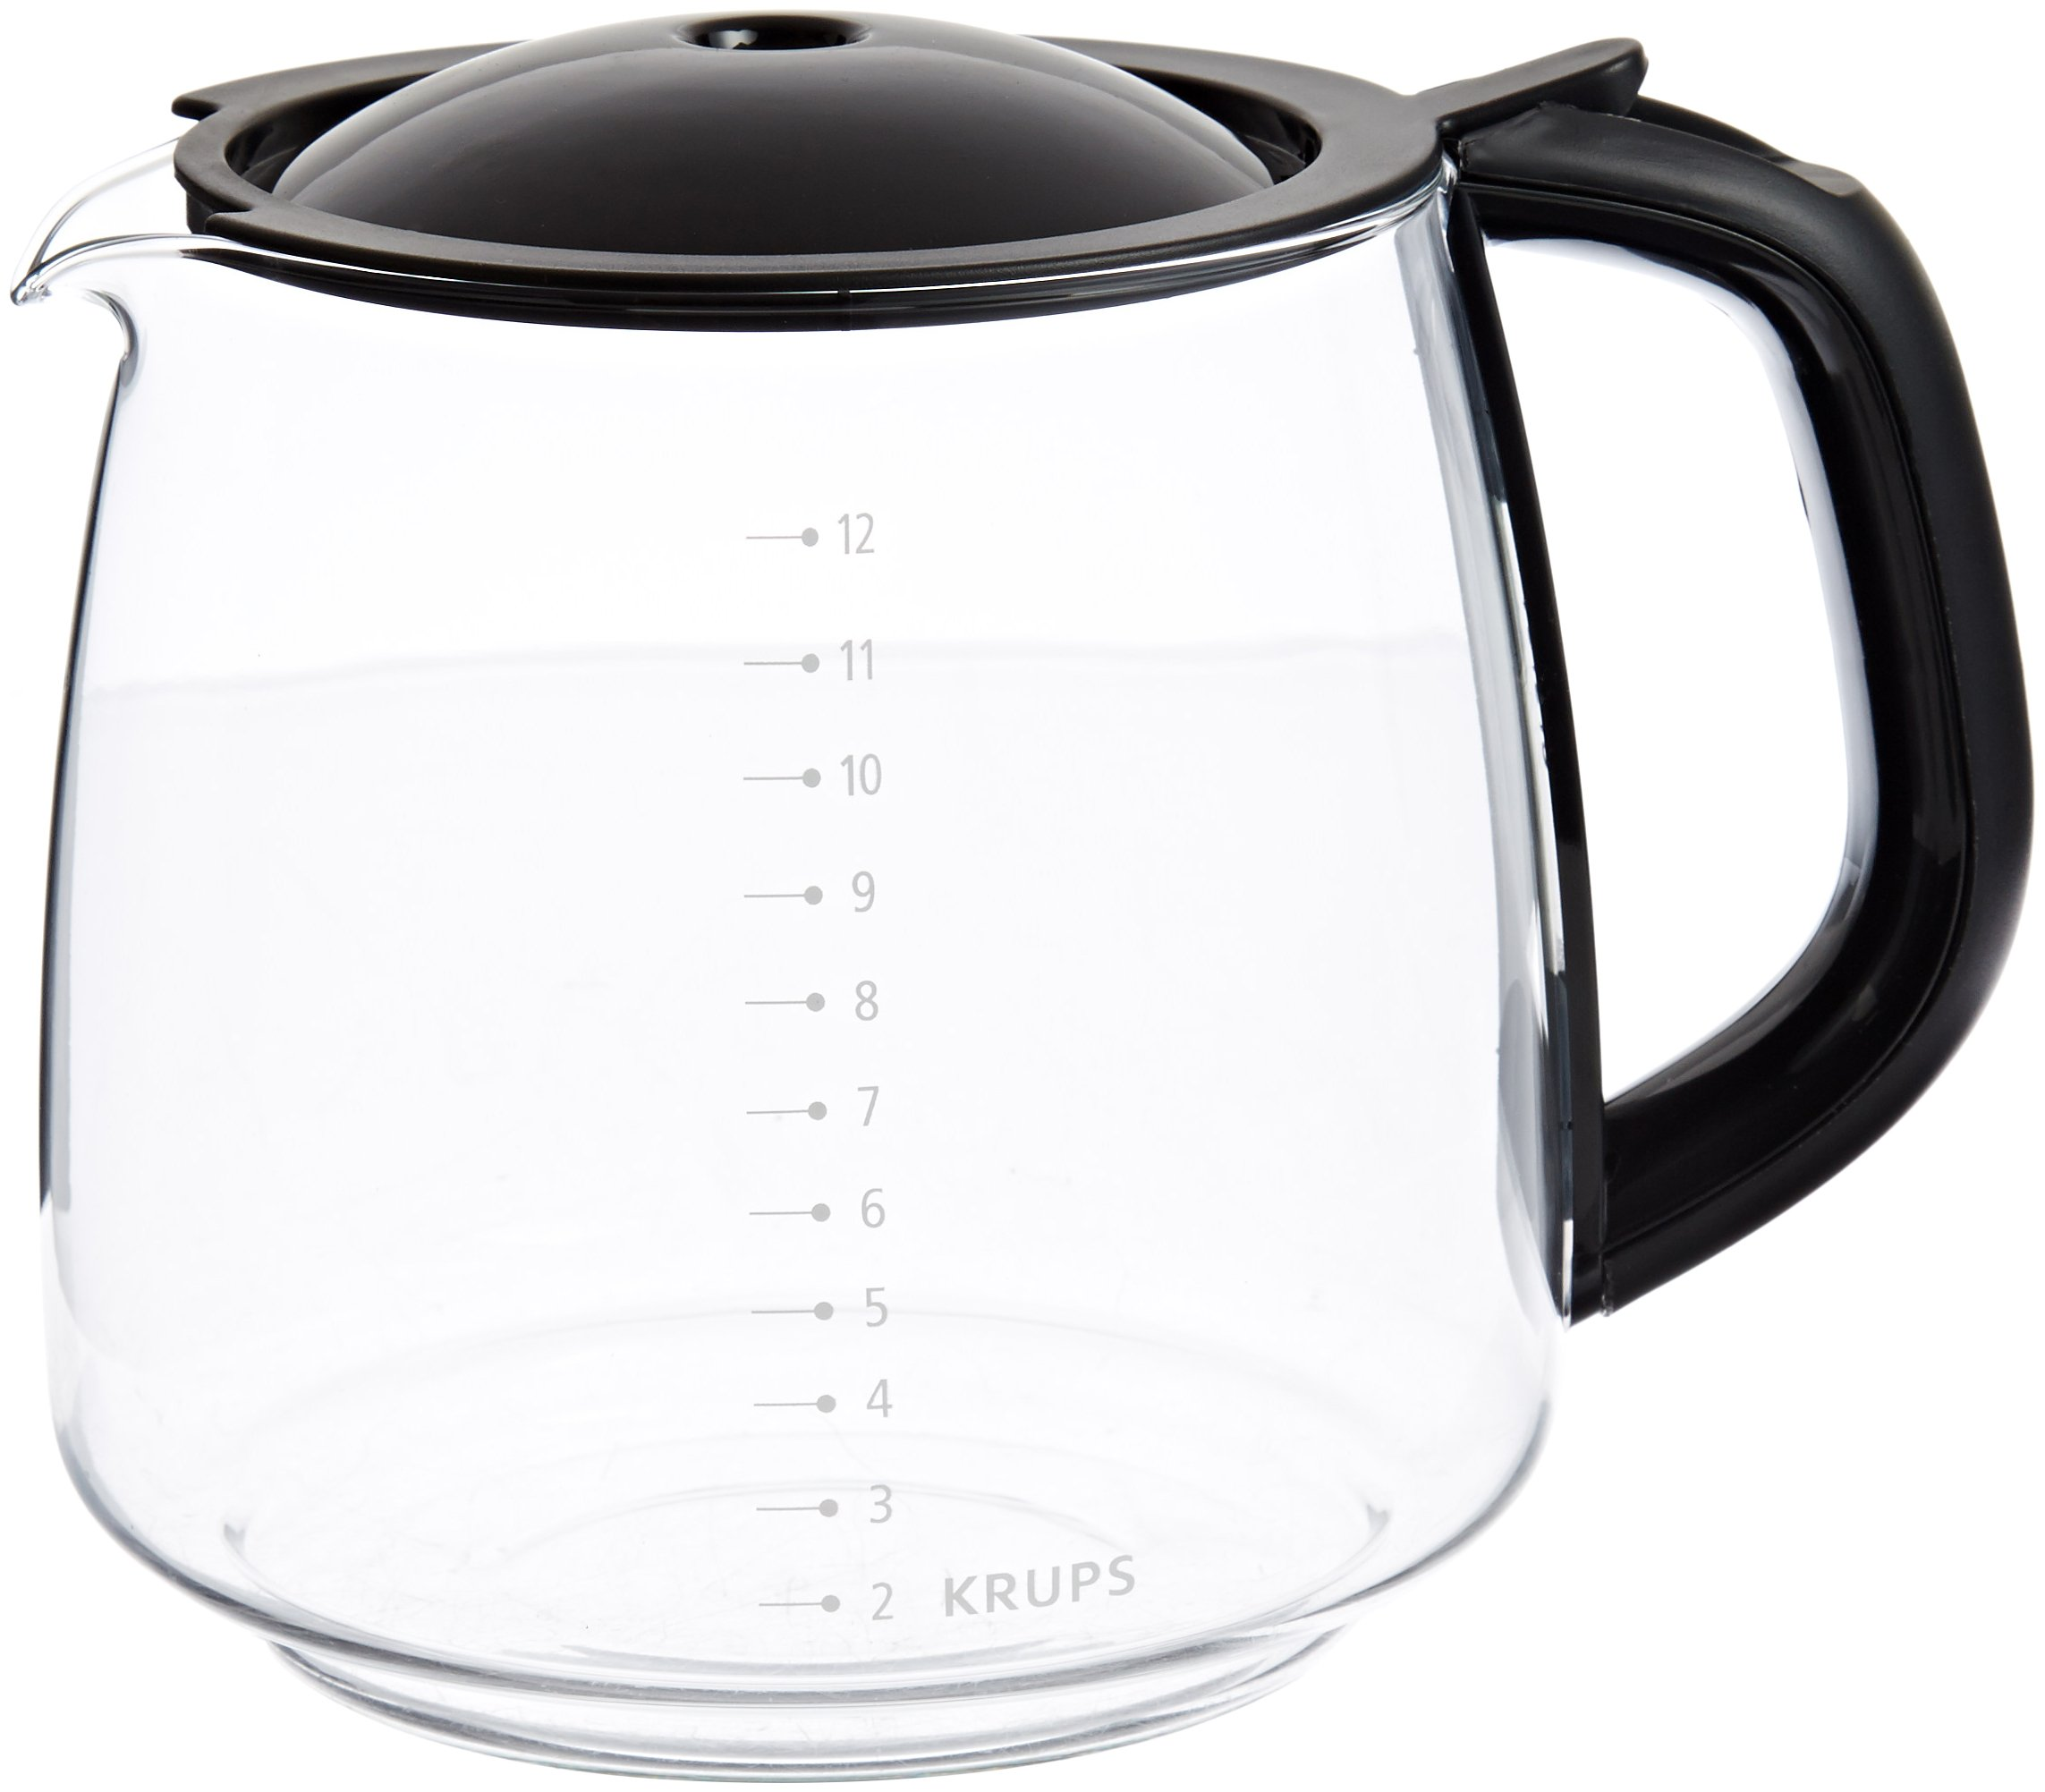 KRUPS F15B0G Coffee Carafe for Any KRUPS FME Series, 12-Cup, Black by KRUPS